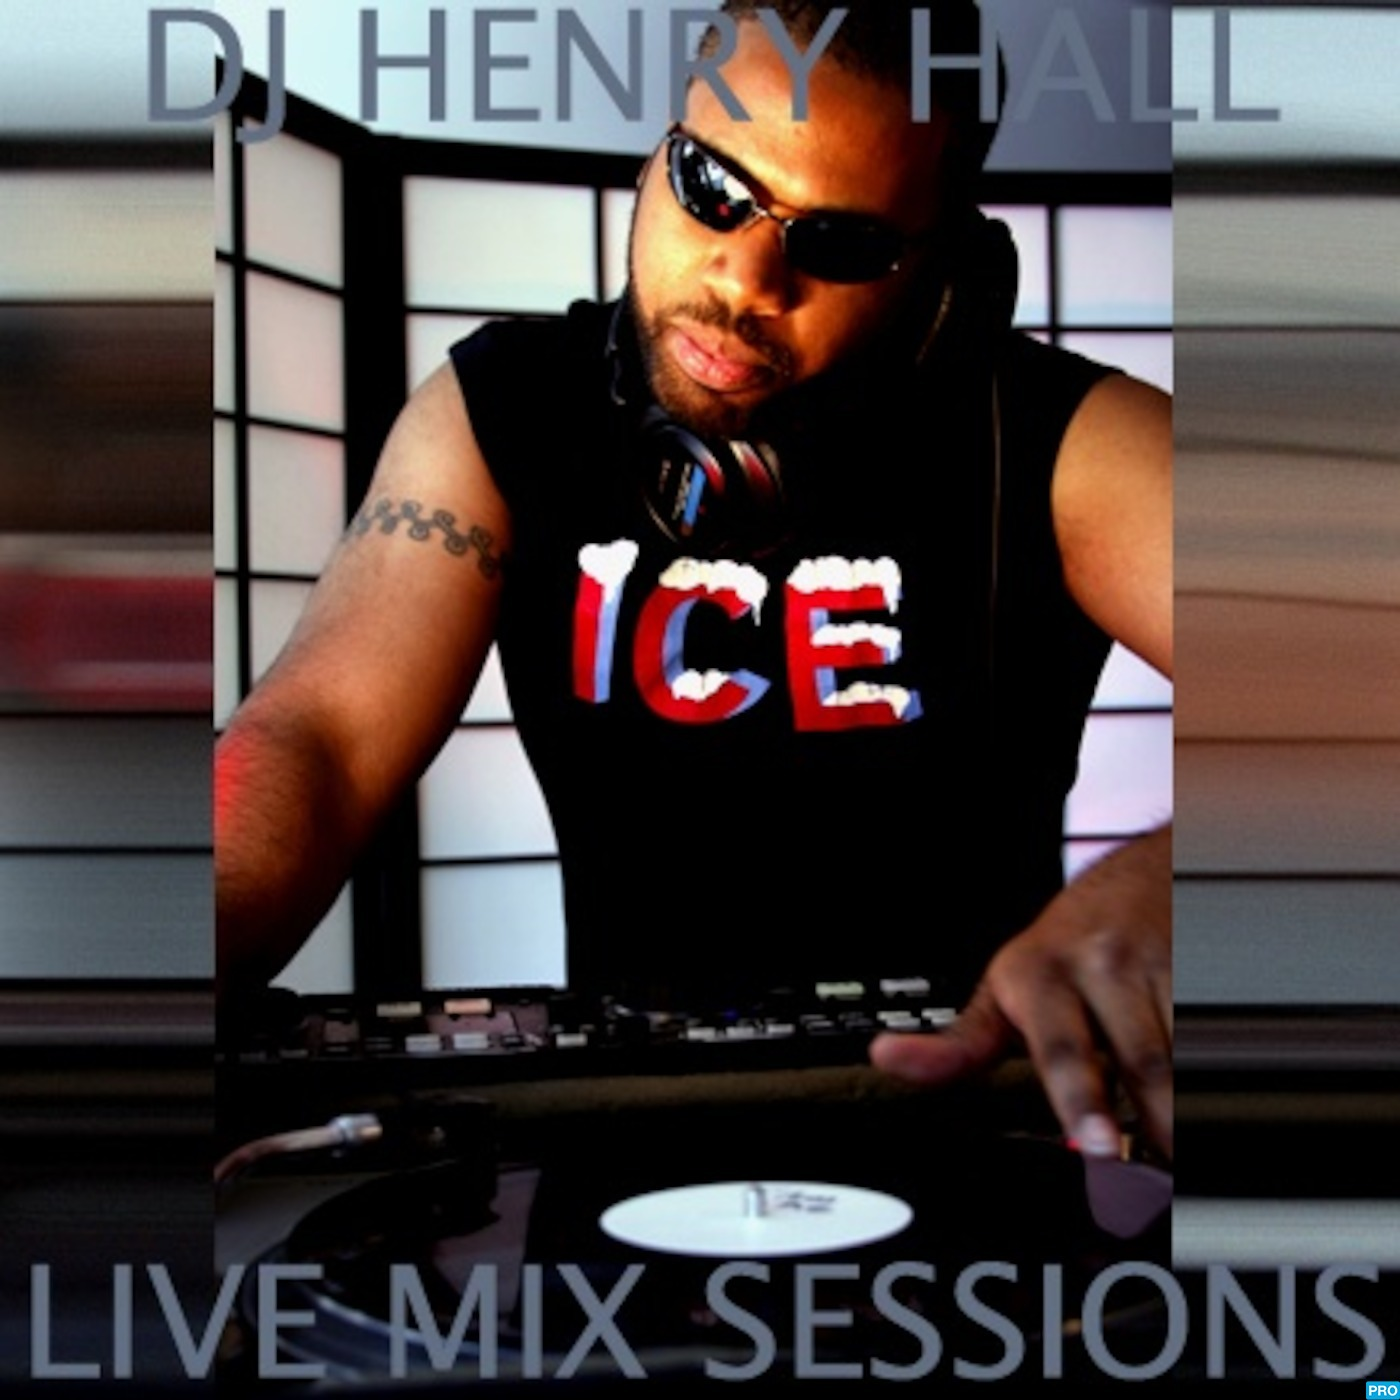 All Mighty House Sounds By DJ Henry Hall